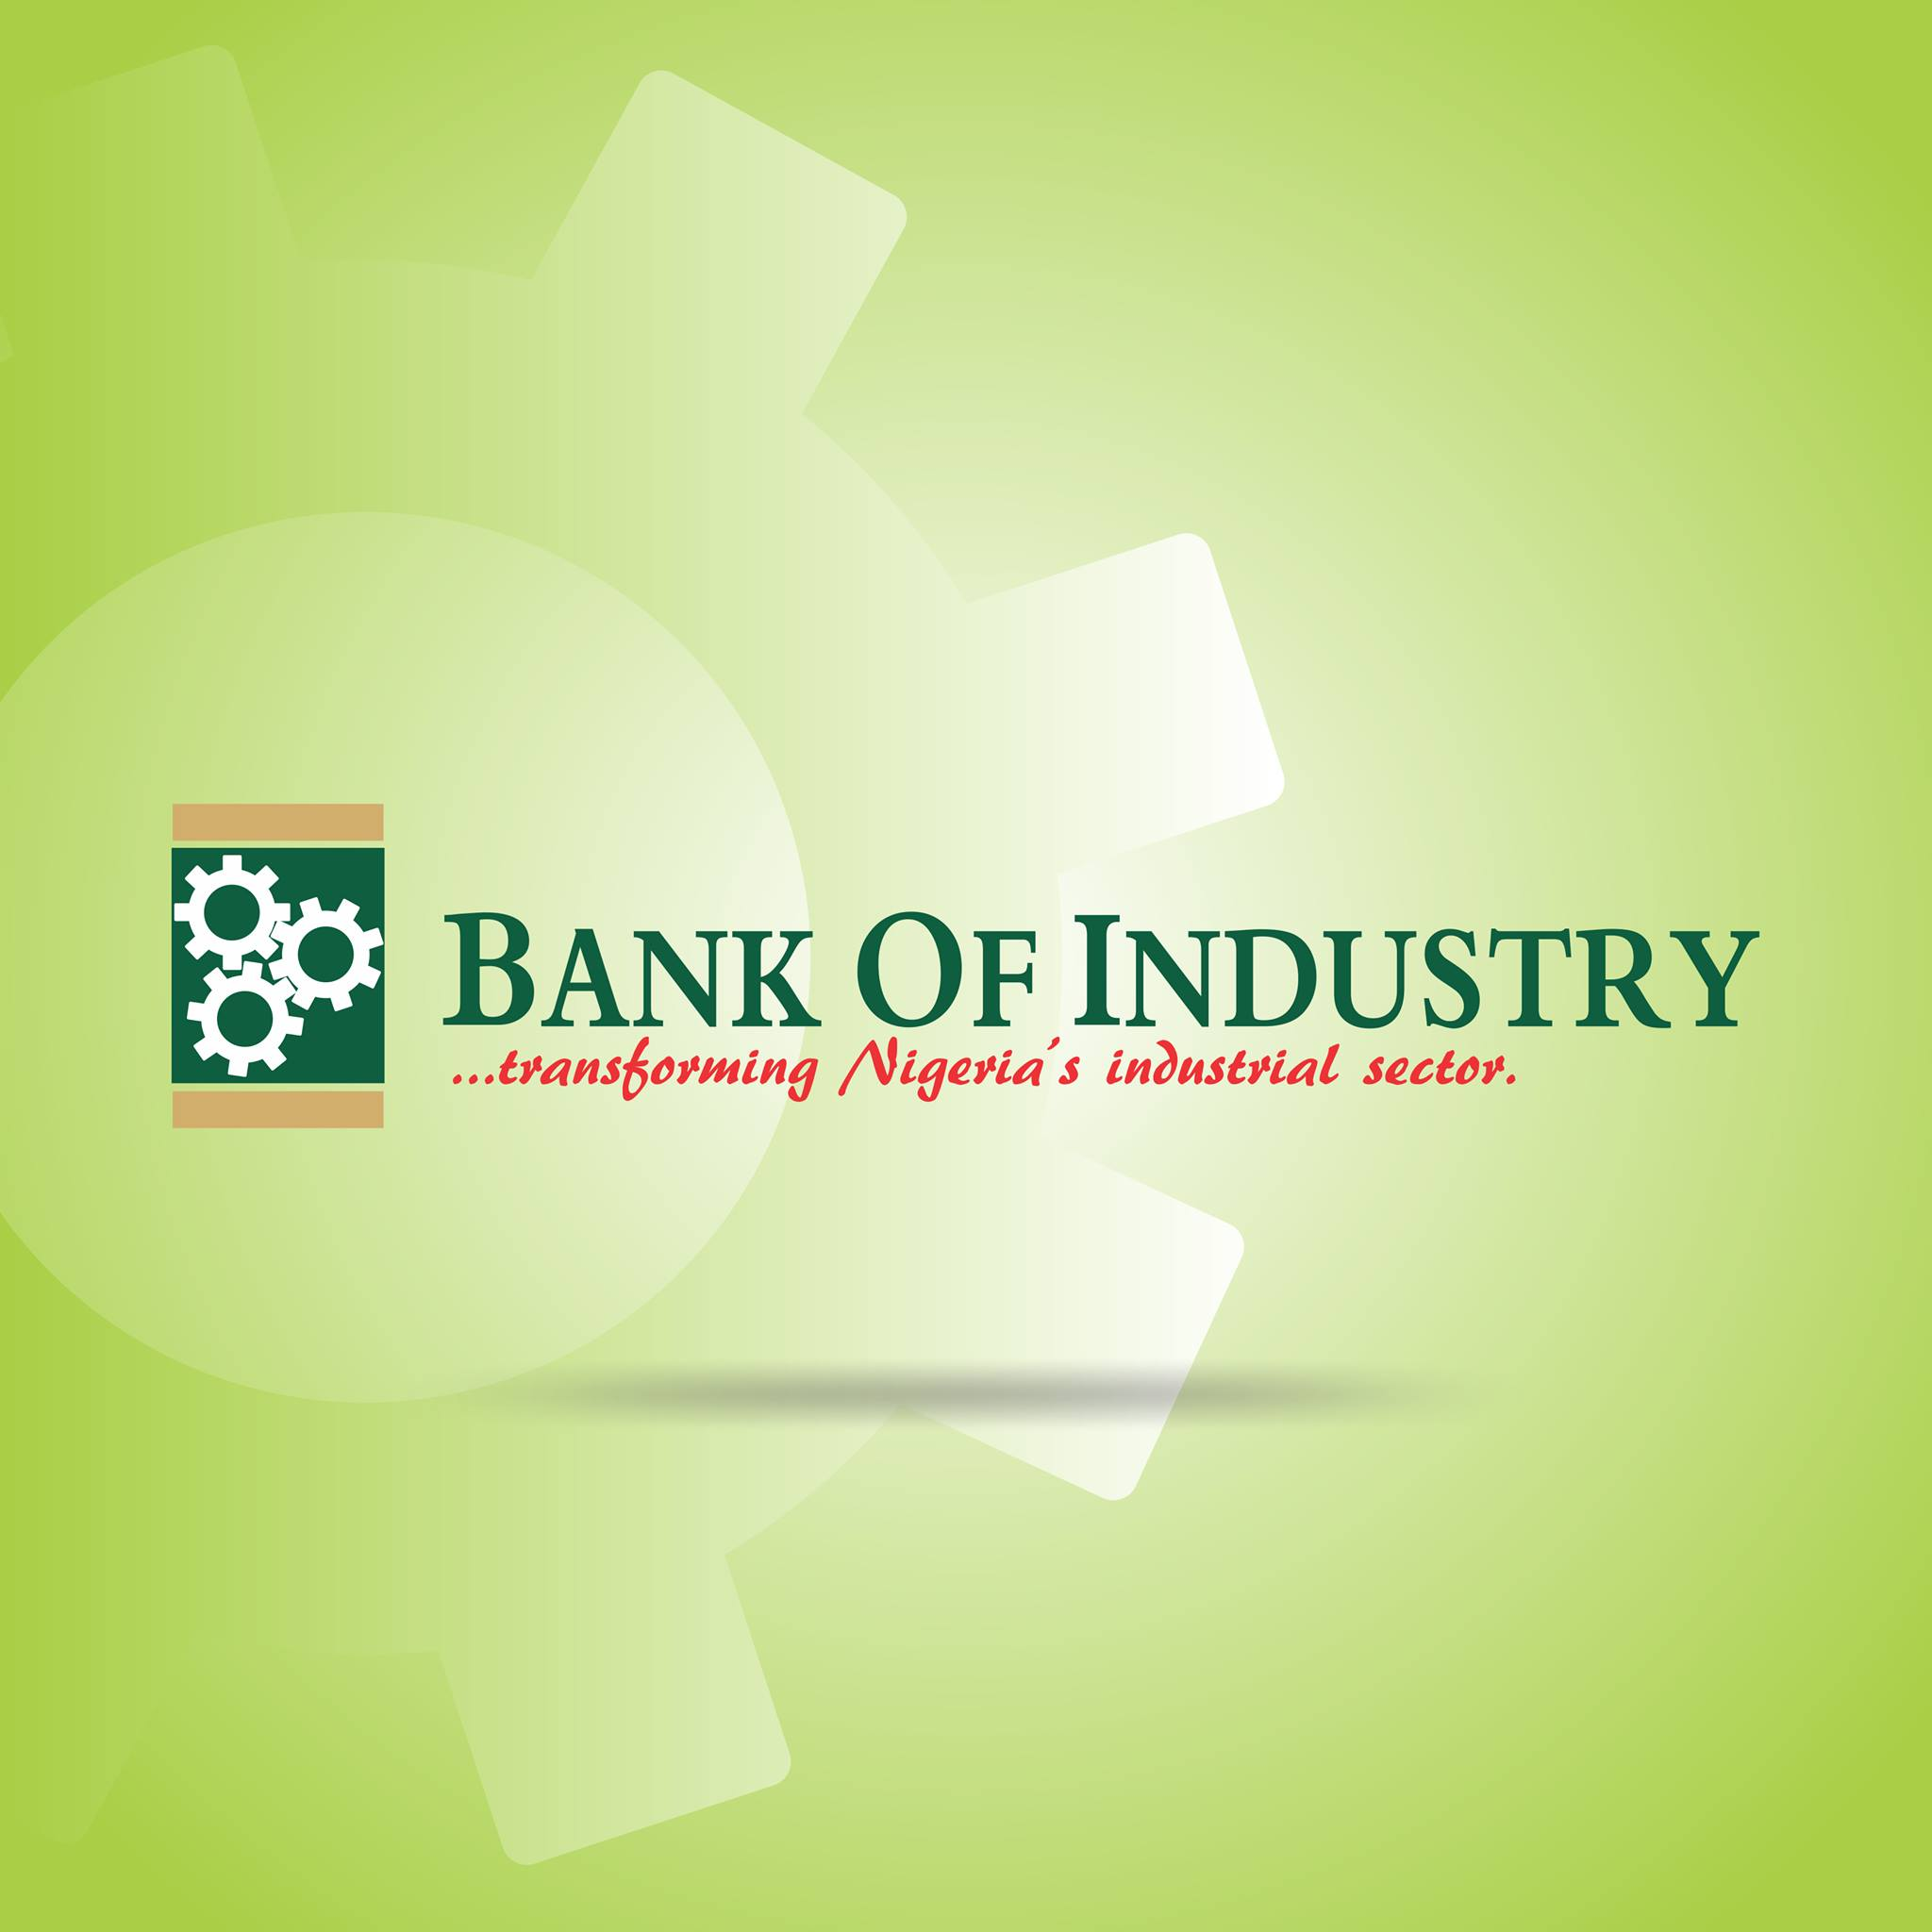 Register to Attend a Technical Training On Tomato Processing & Packaging Workshop For Nigerian Youths by Bank Of Industry Limited